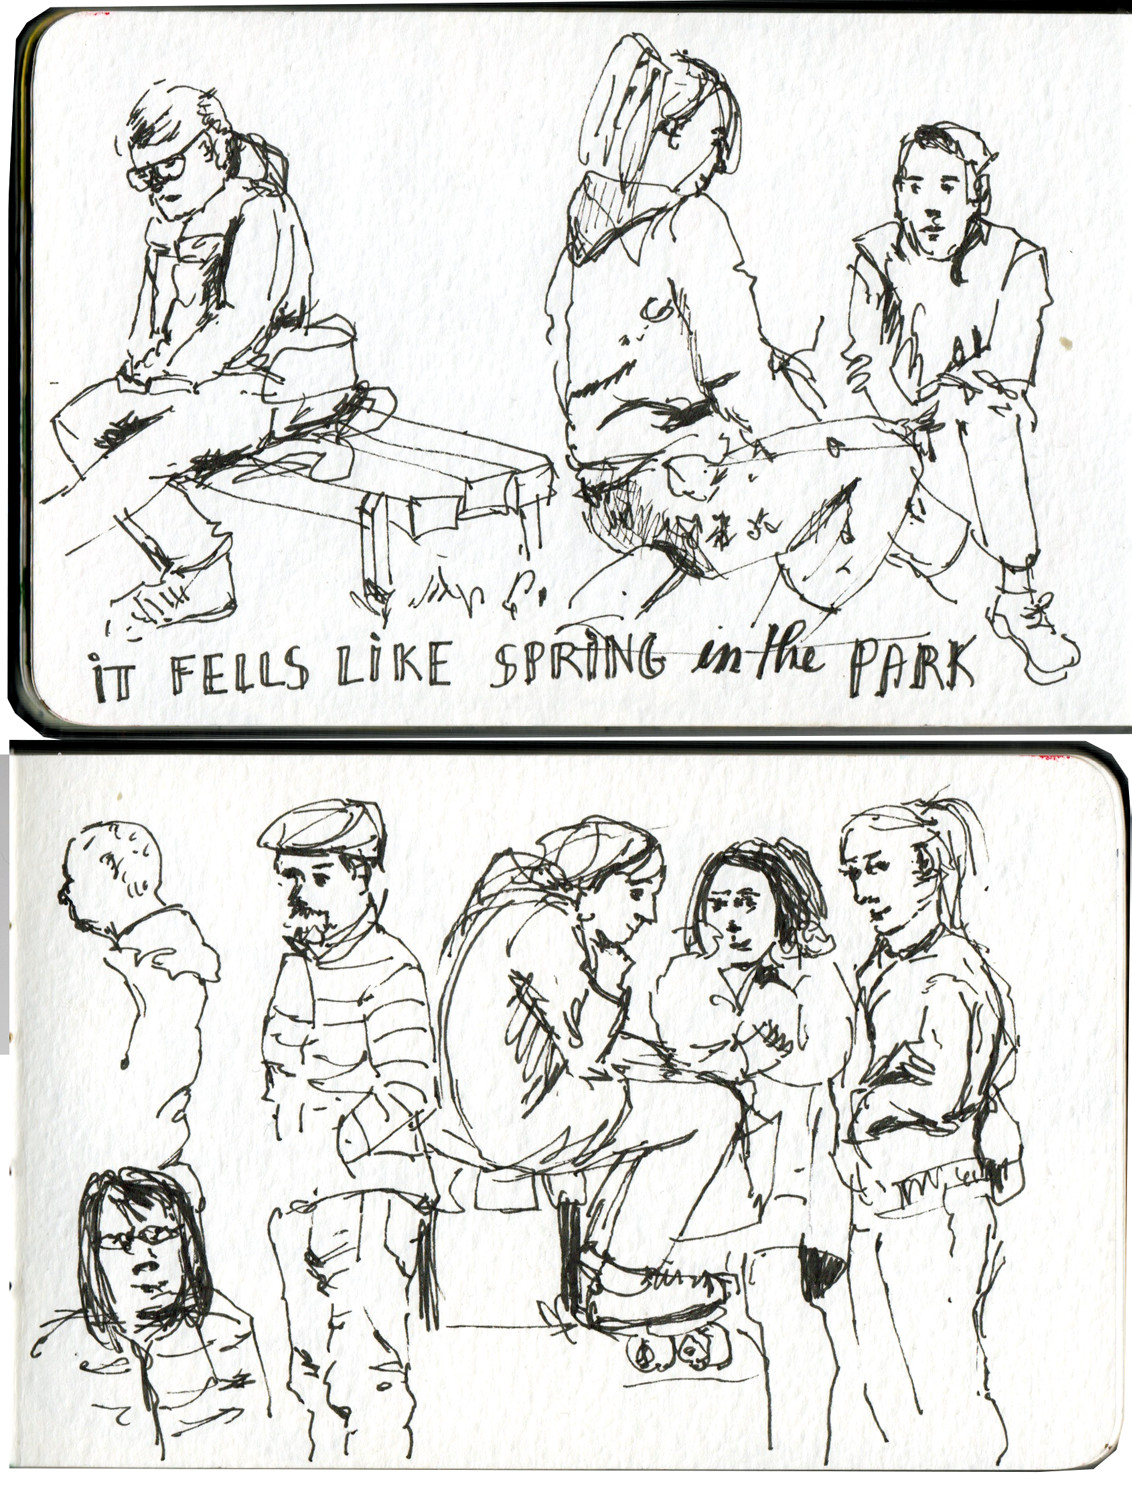 Quick people sketches in the park